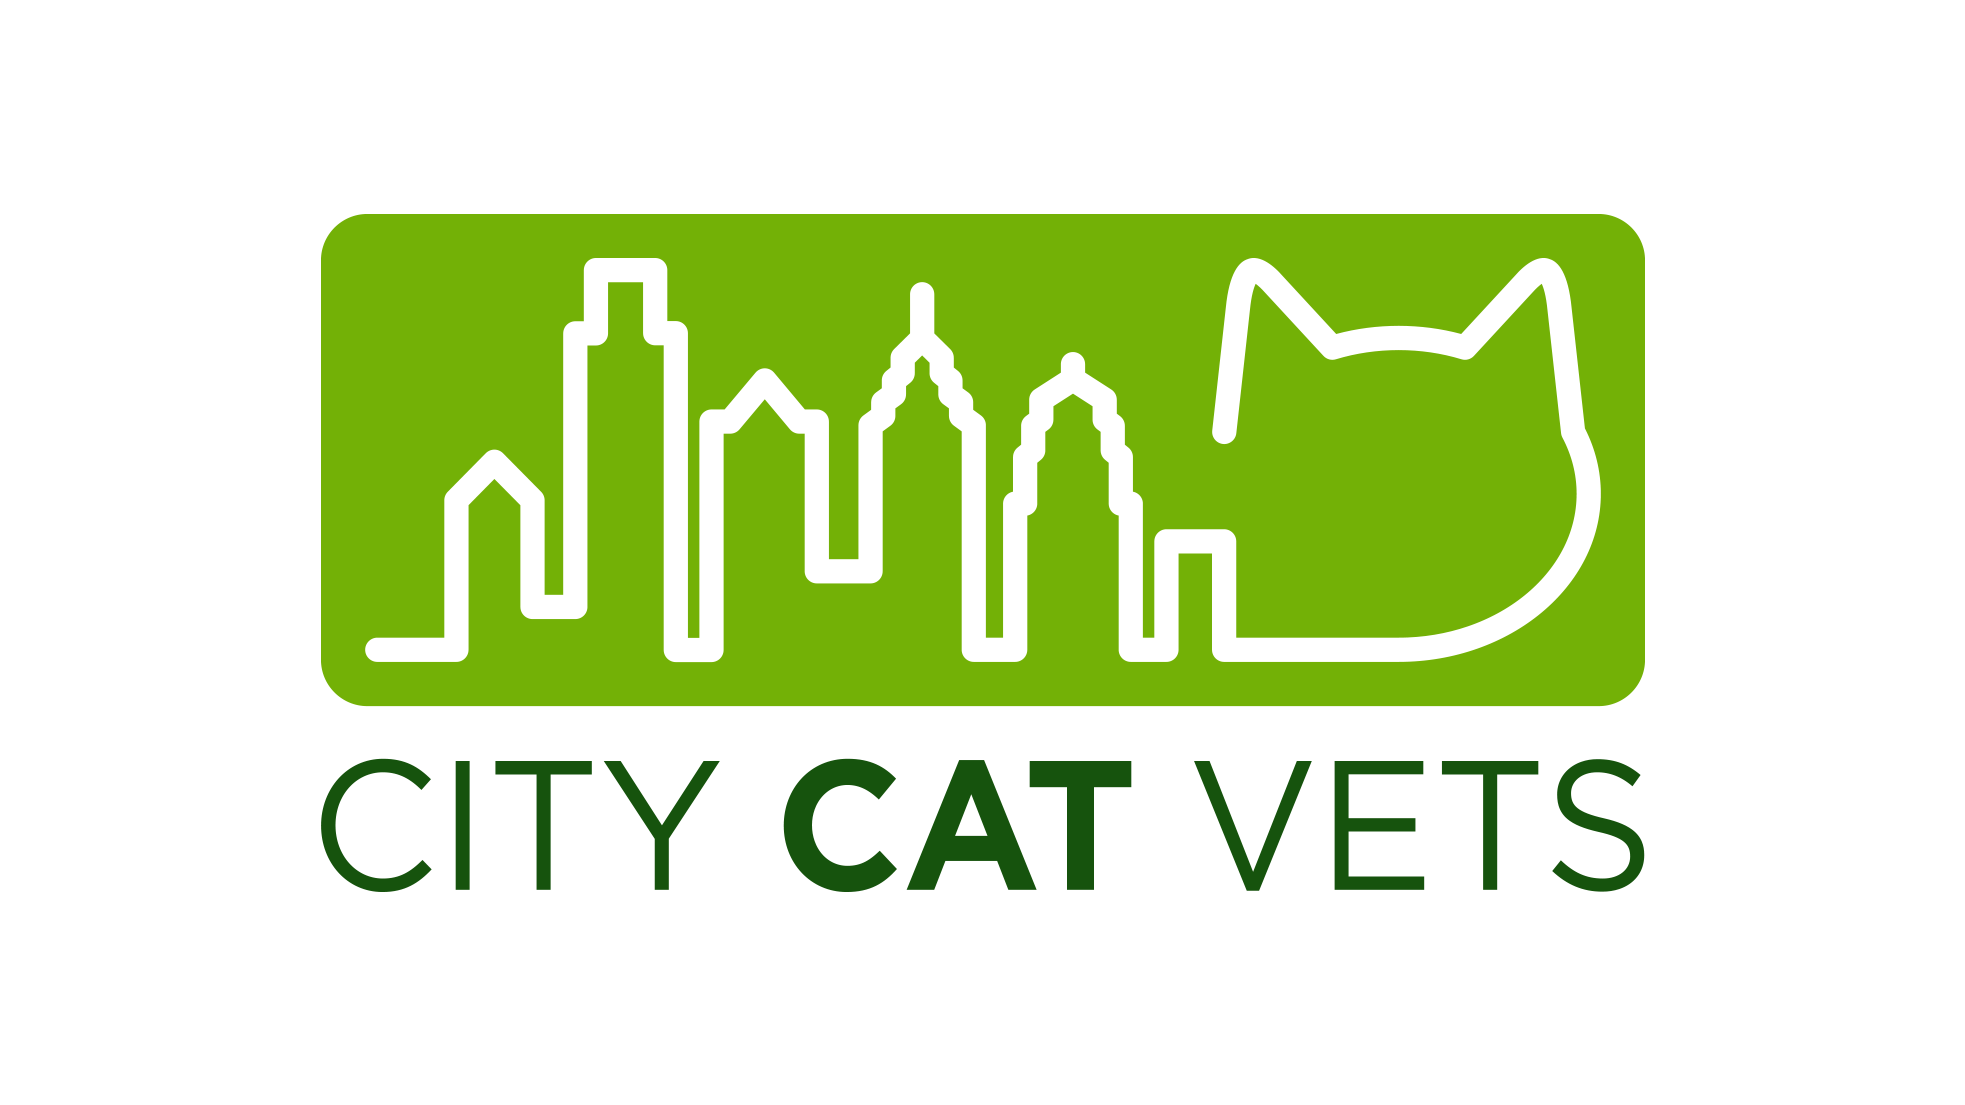 City Cat Vets logo